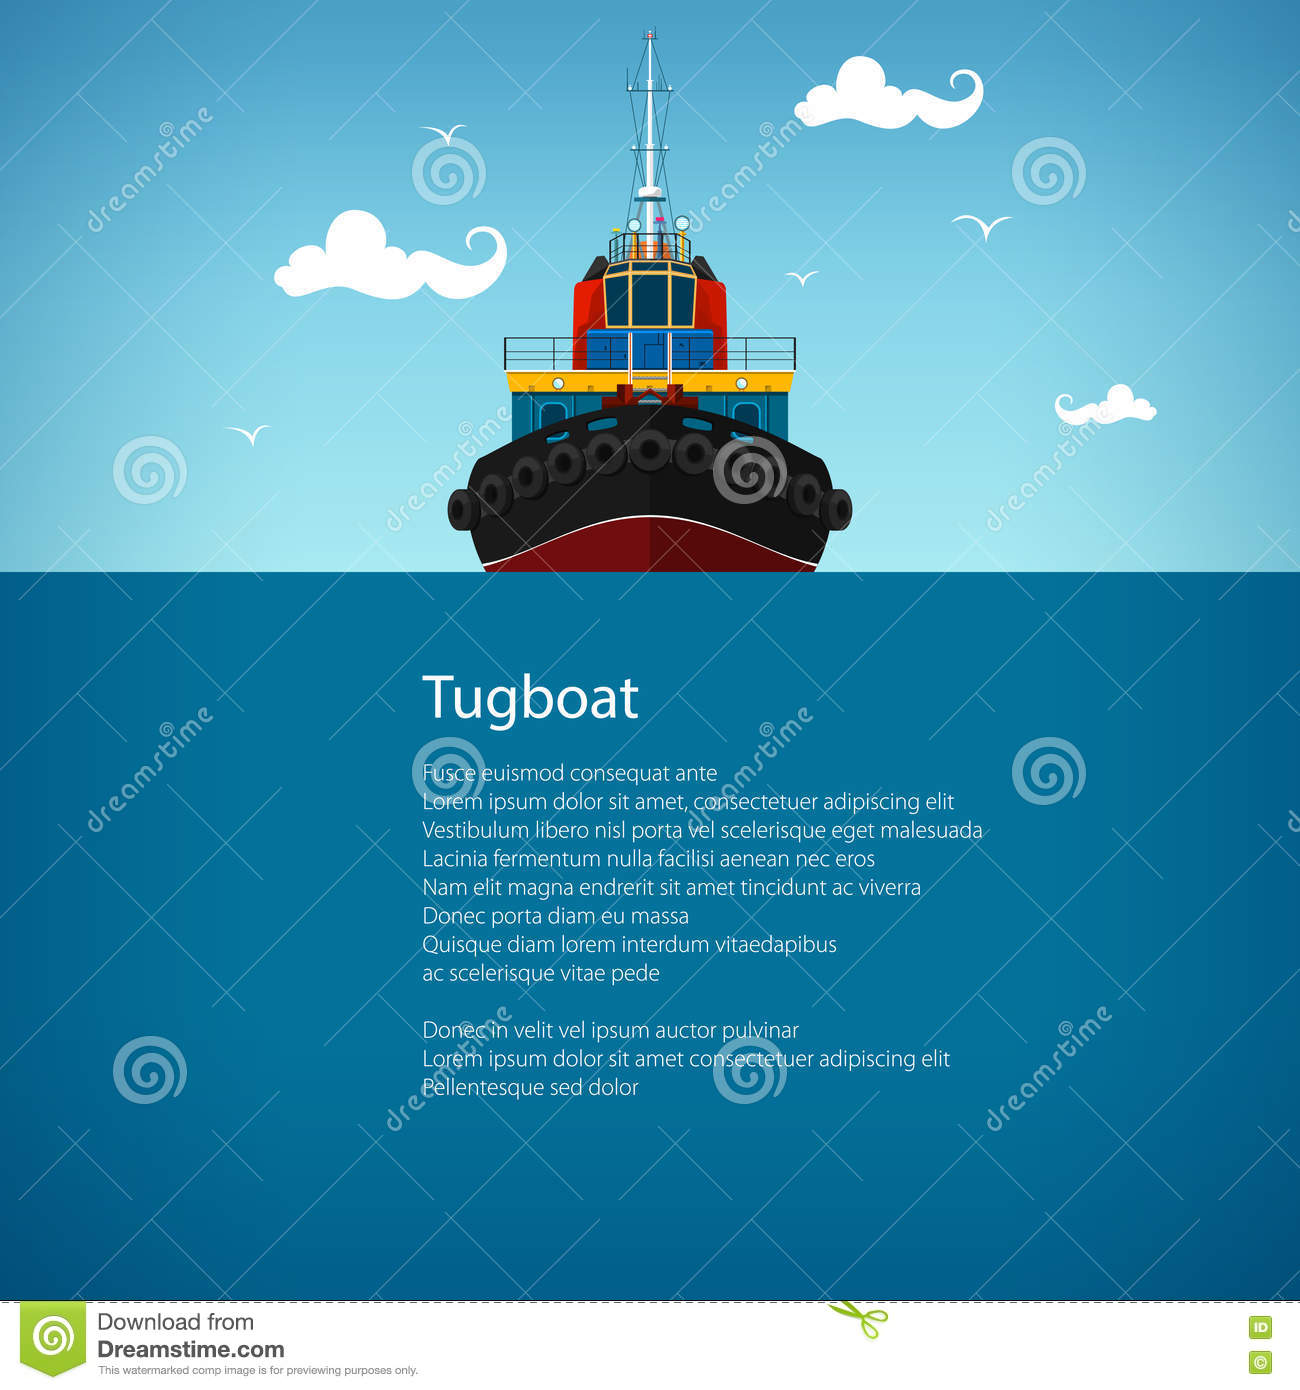 towboat cartoons  illustrations   vector stock images 40 pictures to download from tugboat clip art image Tugboat SVG